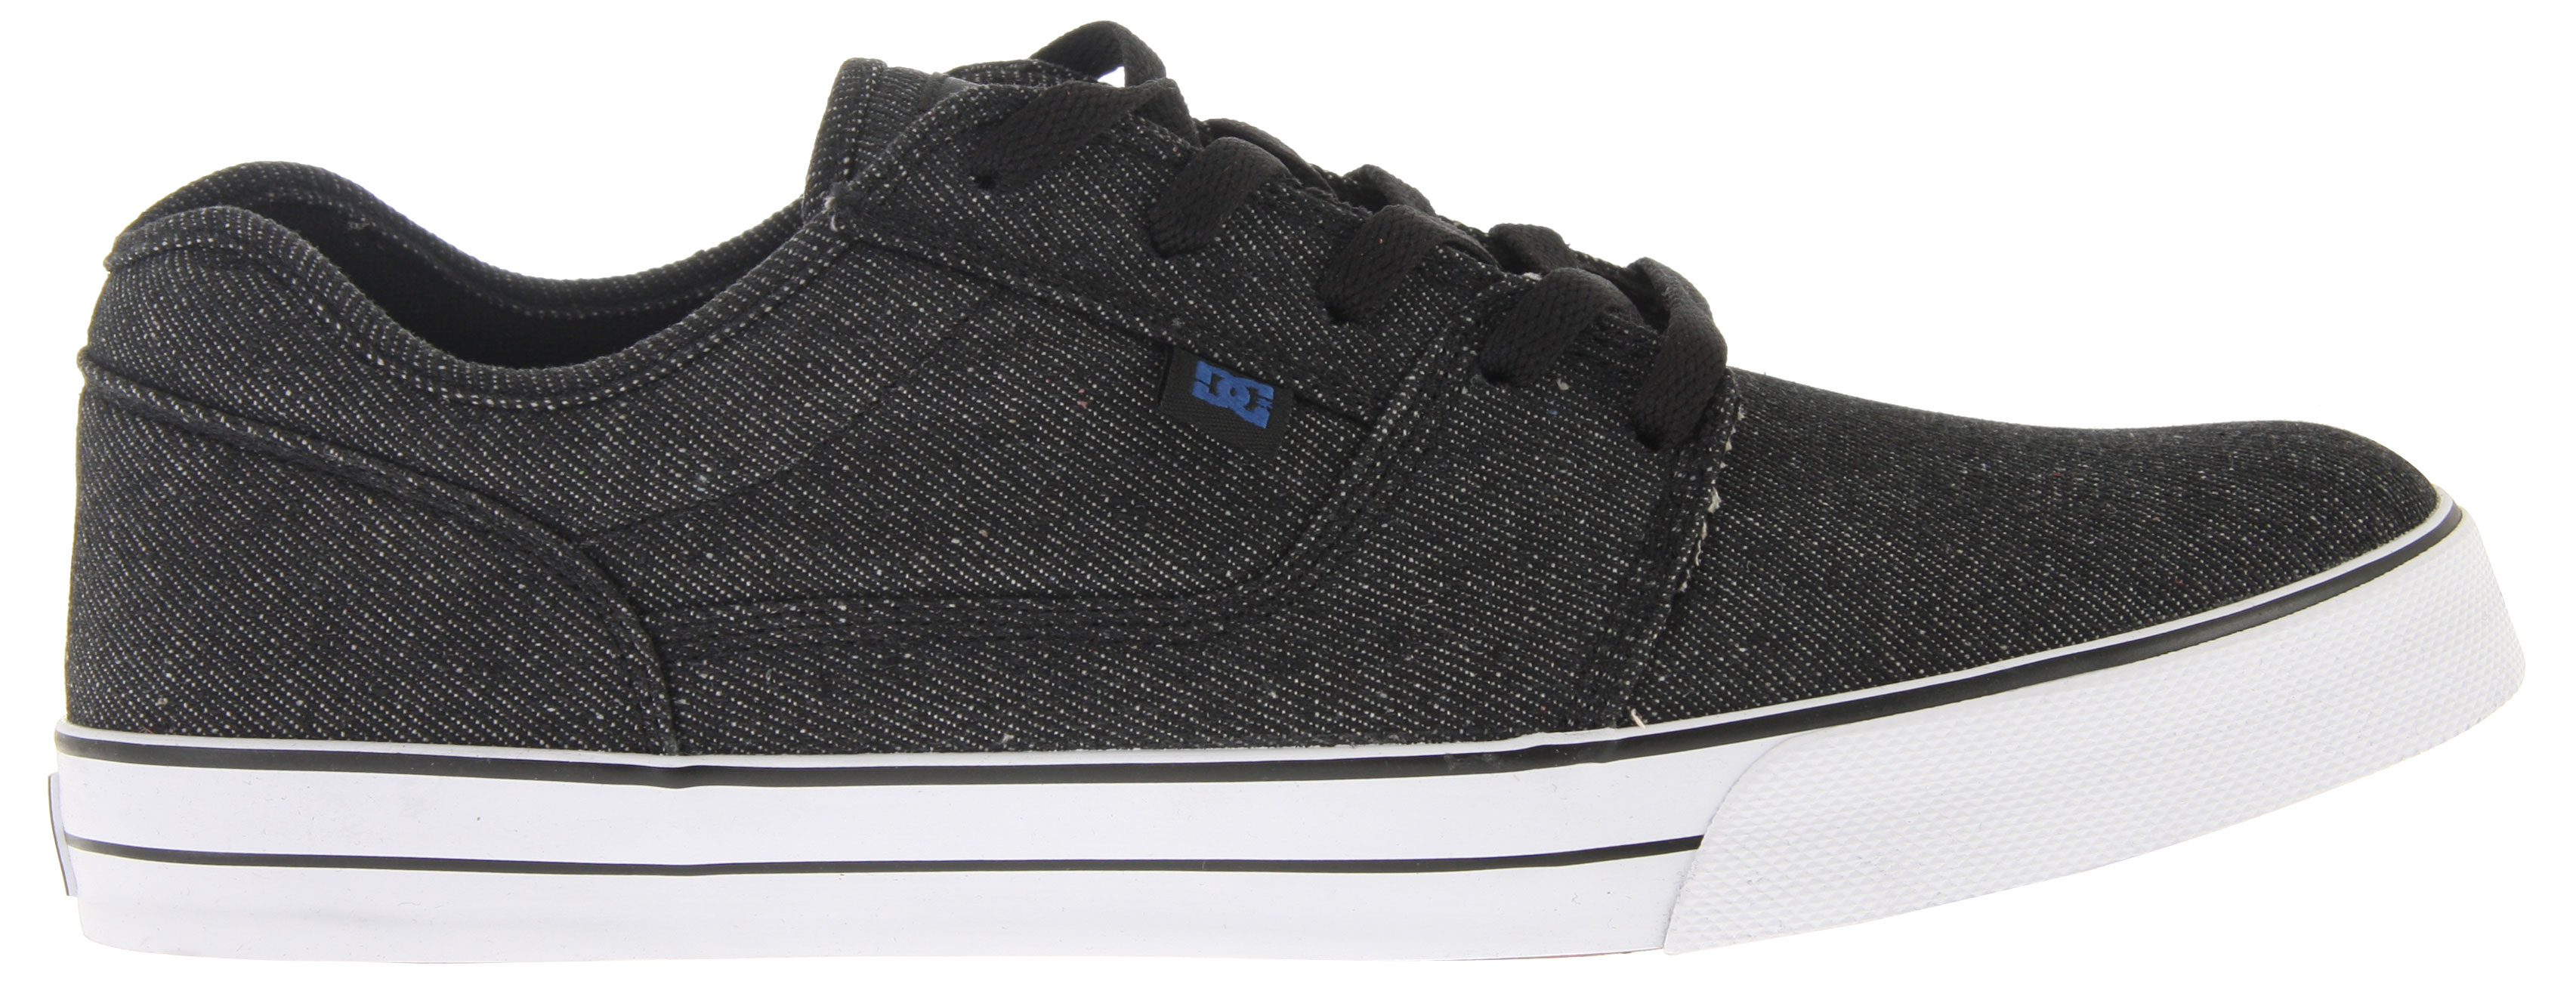 "Skateboard Key Features of the DC Bristol TX Skate Shoes: Classic Skateboarding style Canvas upper for comfort Vulcanized construction DC ""Pill Pattern"" sole for functionality Super sticky outsole DC logo tab and tongue Foam padded tongue and collar - $35.95"